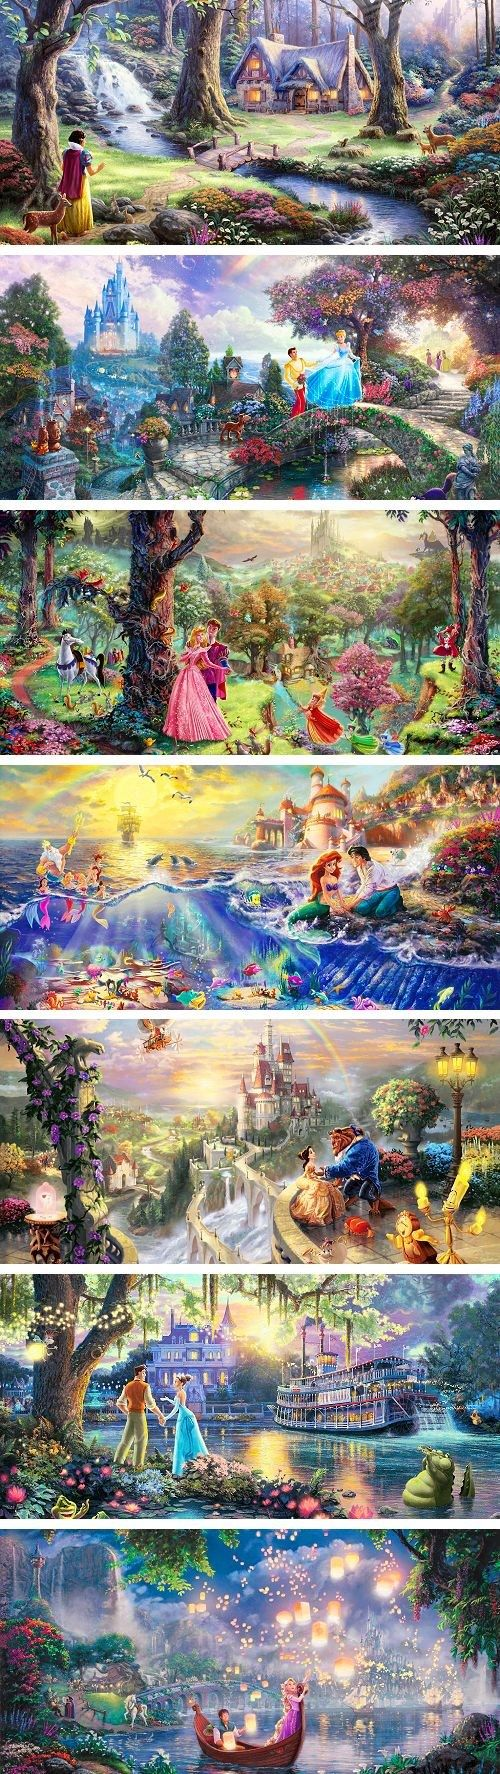 910572236909093433196 Disney Scenes by Thomas Kincade